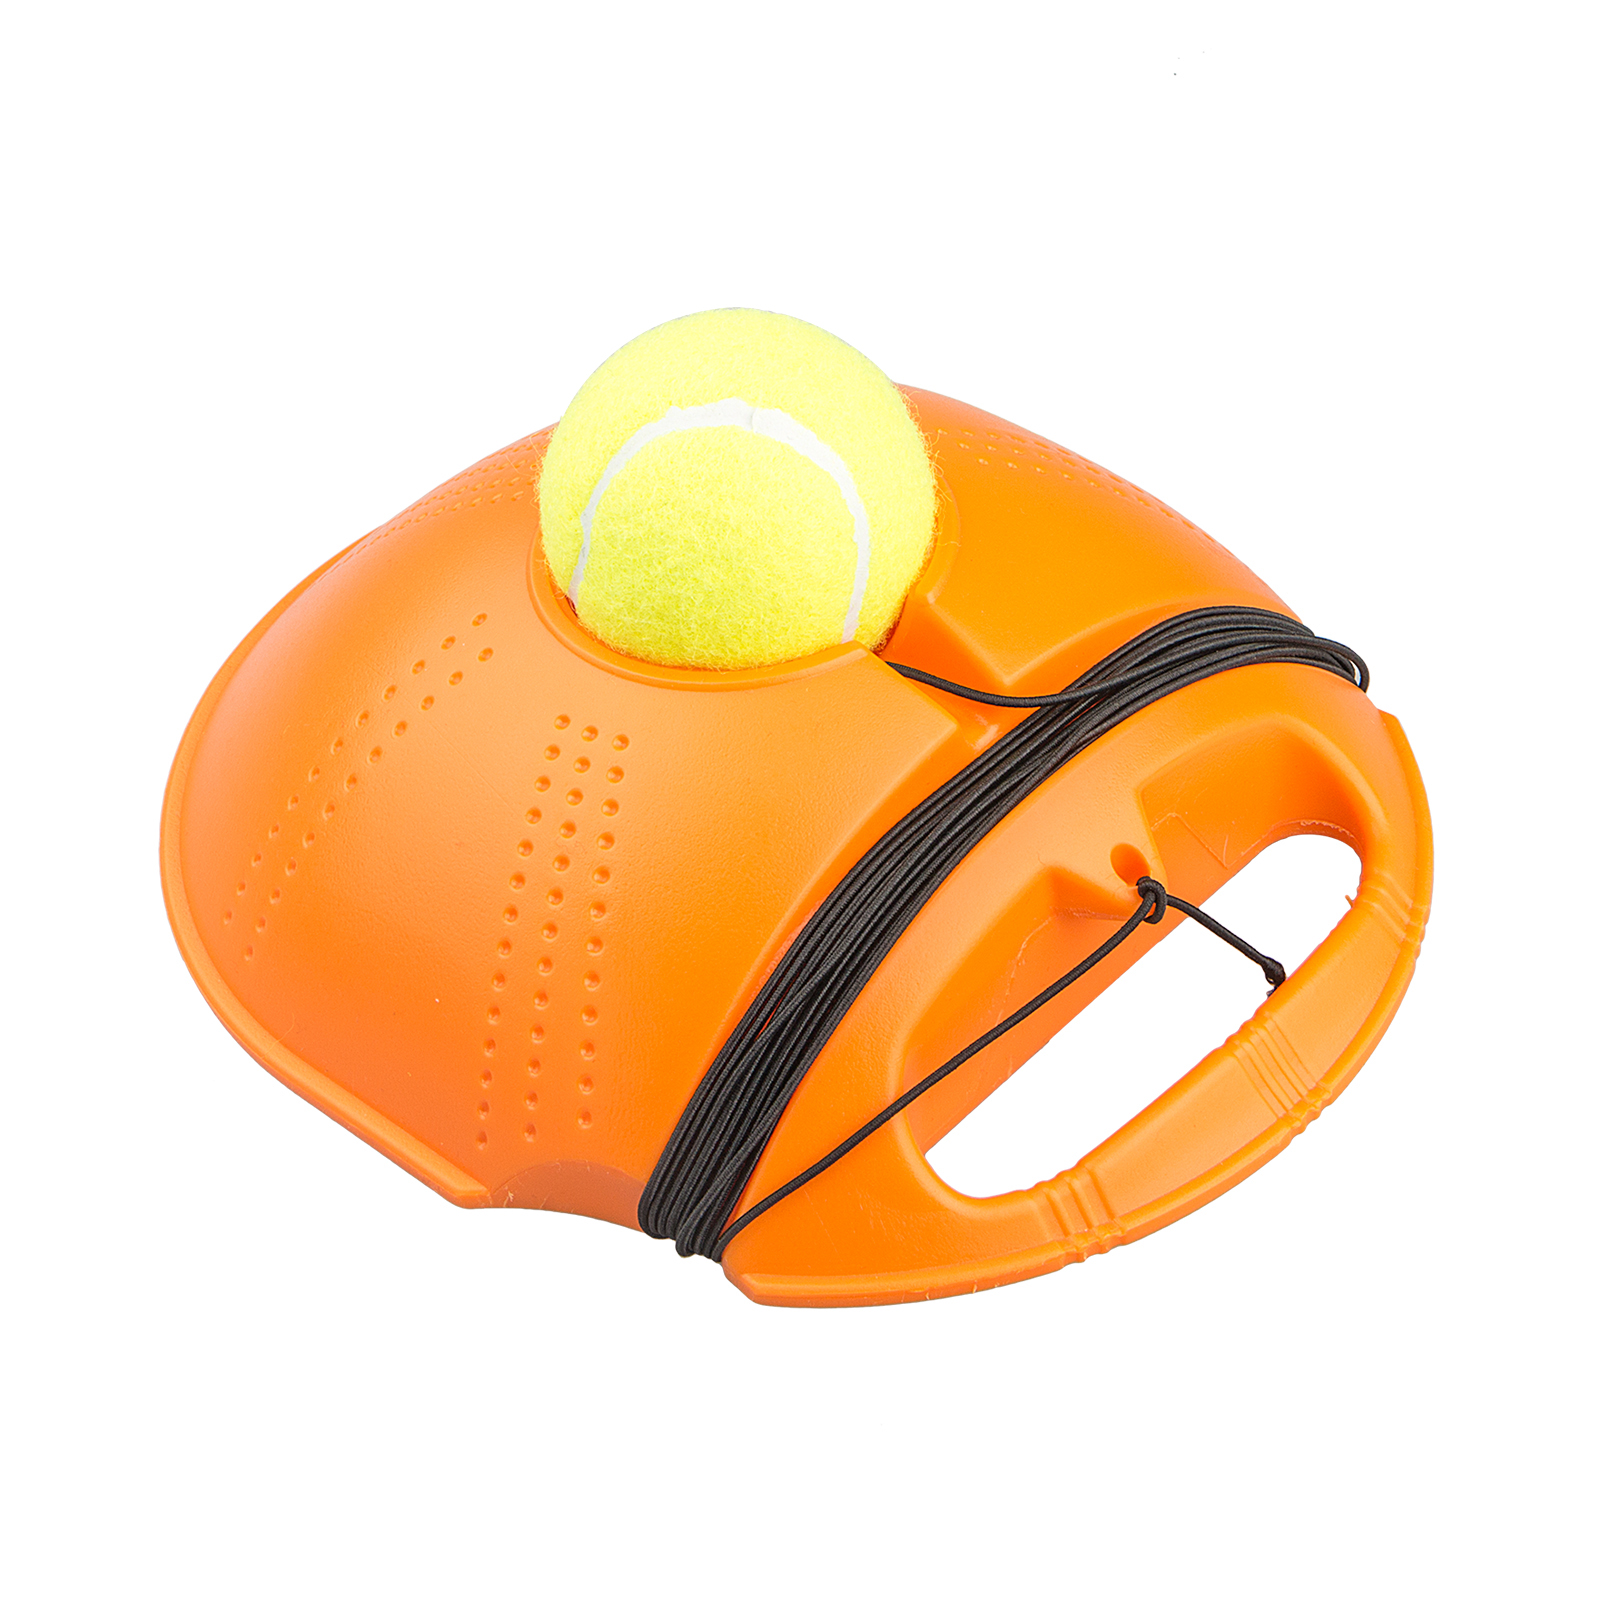 Tennis Ball Singles Training Practice Balls Back Trainer Fitness Tools+Tennis Durable Portable Practice on Your Own